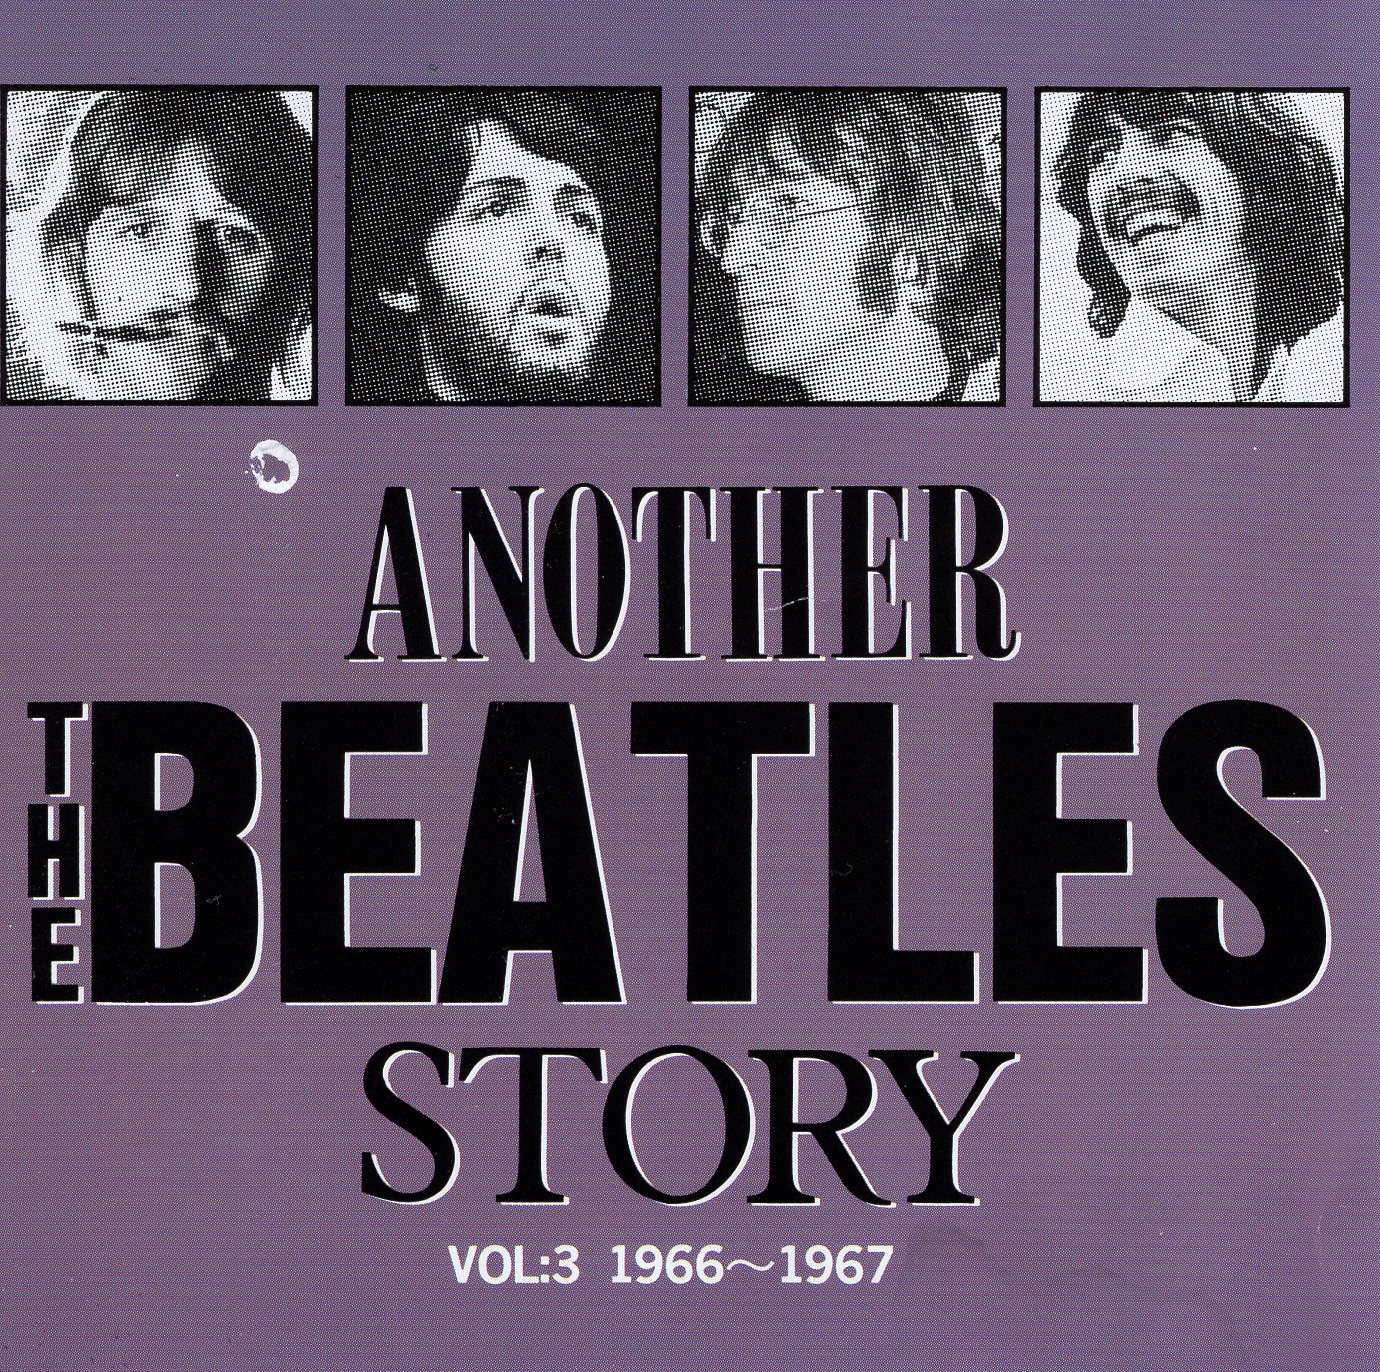 """Another Beatles Story Vol.3"" The Beatles"